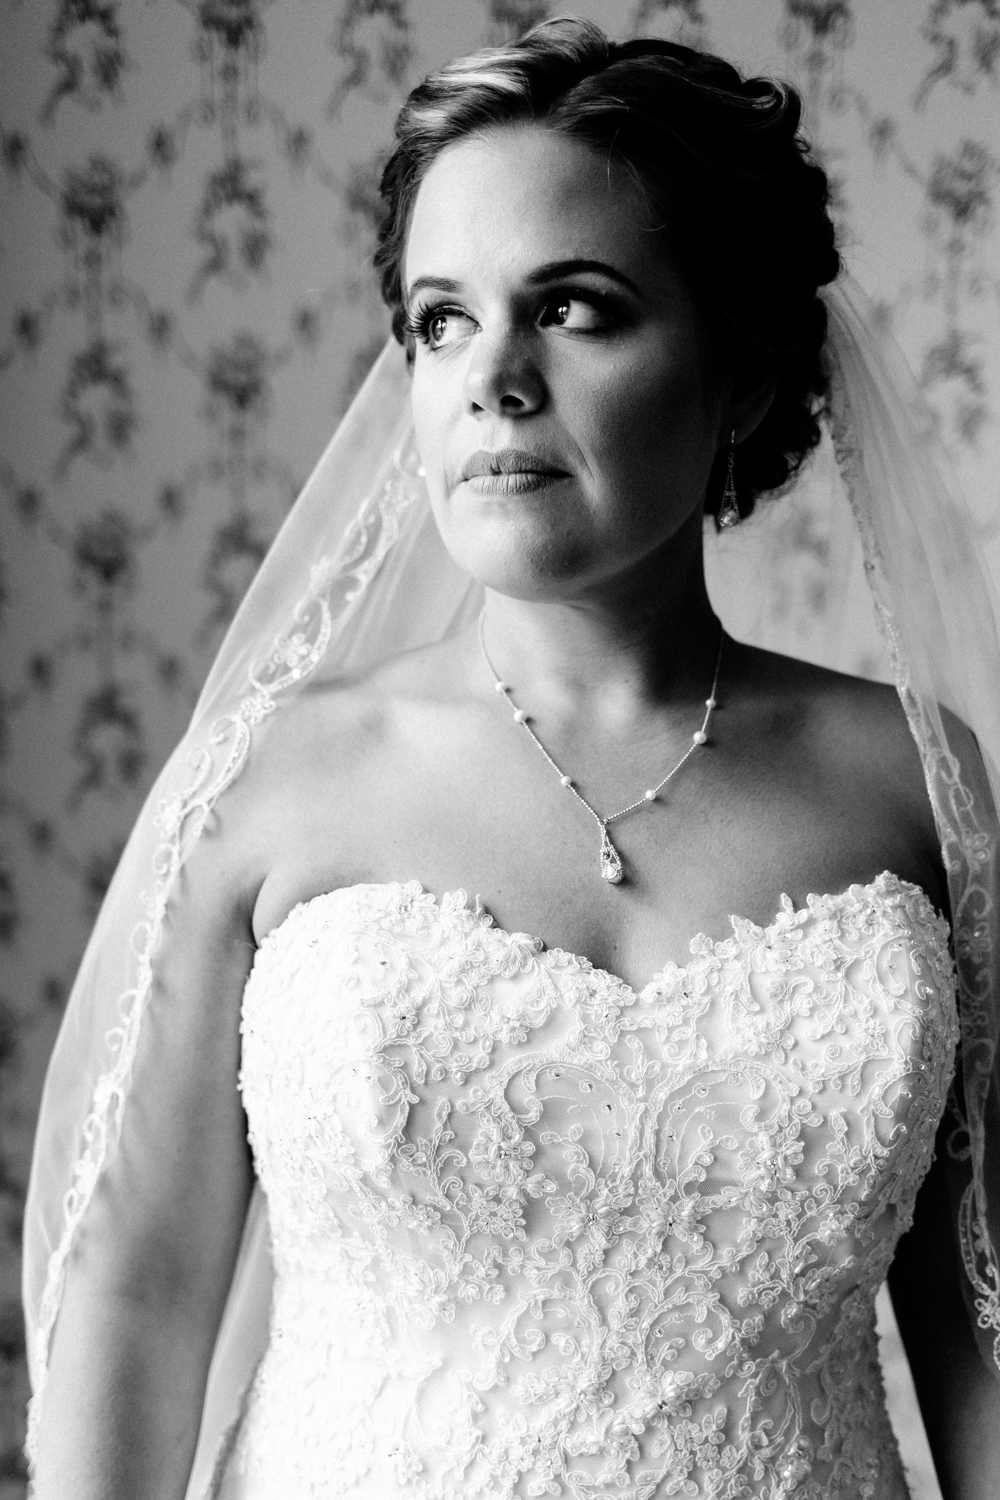 Black and white portrait of the bride in a sweetheart lace gown.